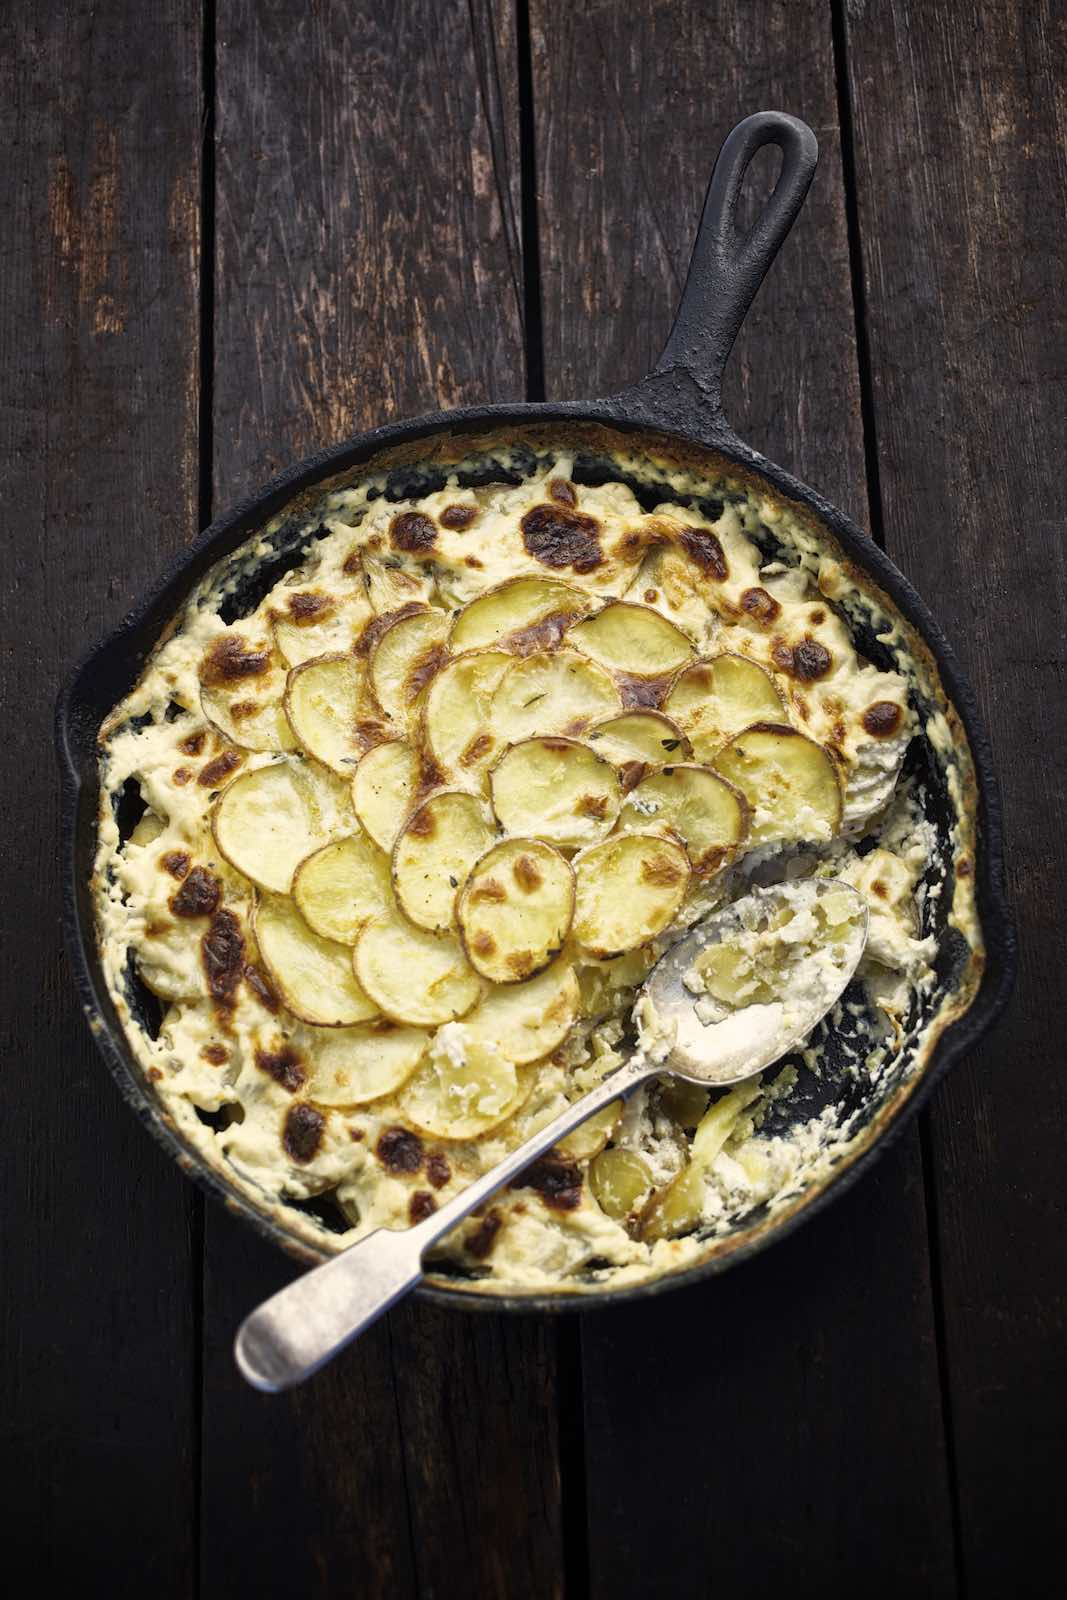 Jody Horton Photography - Potatoes Au Gratin in cast iron skillet on wood picnic table.